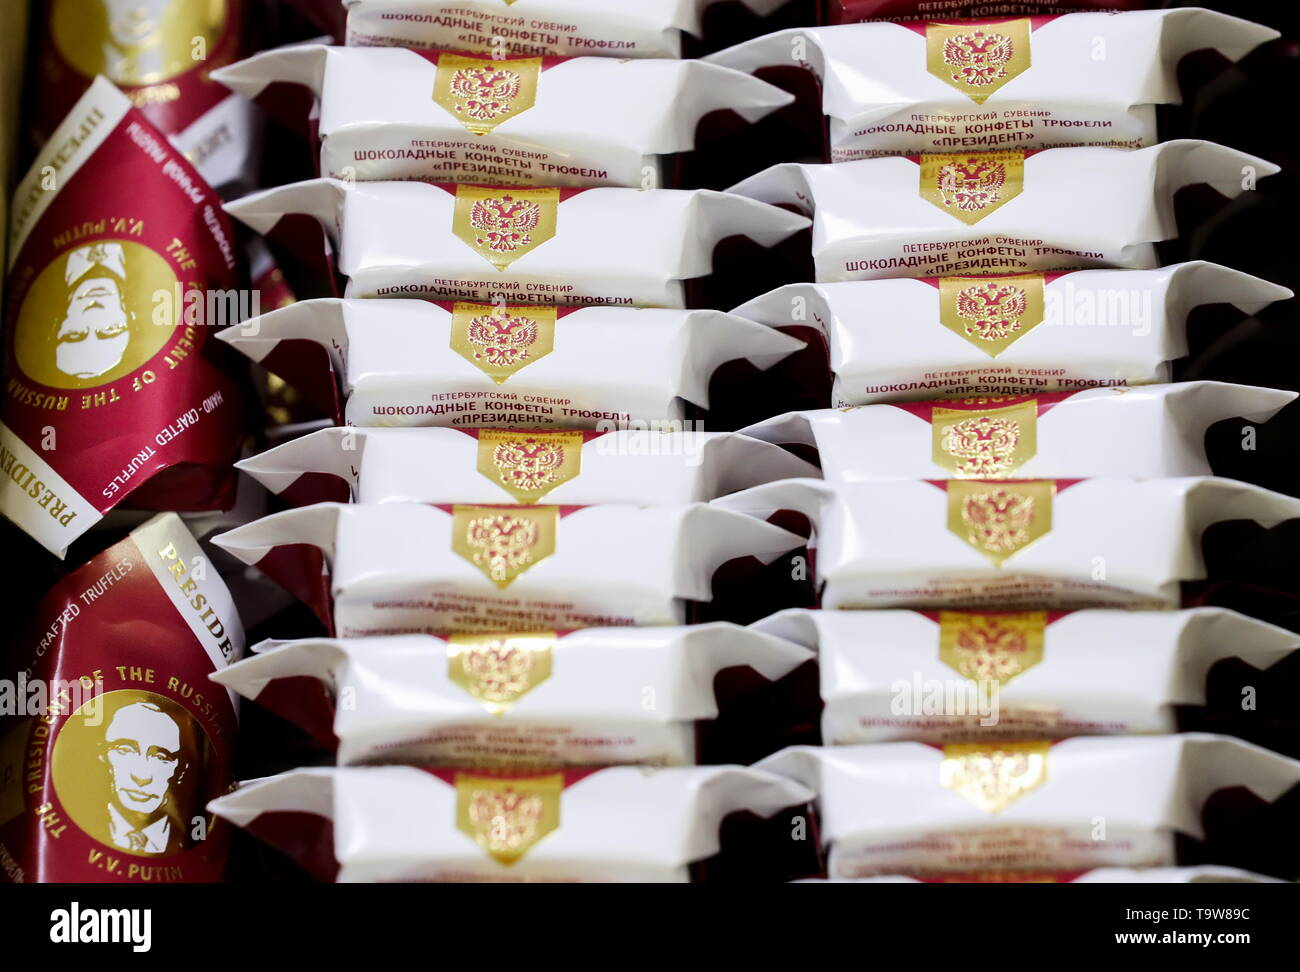 St Petersburg, Russia. 20th May, 2019. ST PETERSBURG, RUSSIA - MAY 20, 2019: Sweet wrappers bearing images of Russian President Vladimir Putin produced at the GC - Golden Candies factory. Peter Kovalev/TASS Credit: ITAR-TASS News Agency/Alamy Live News Stock Photo